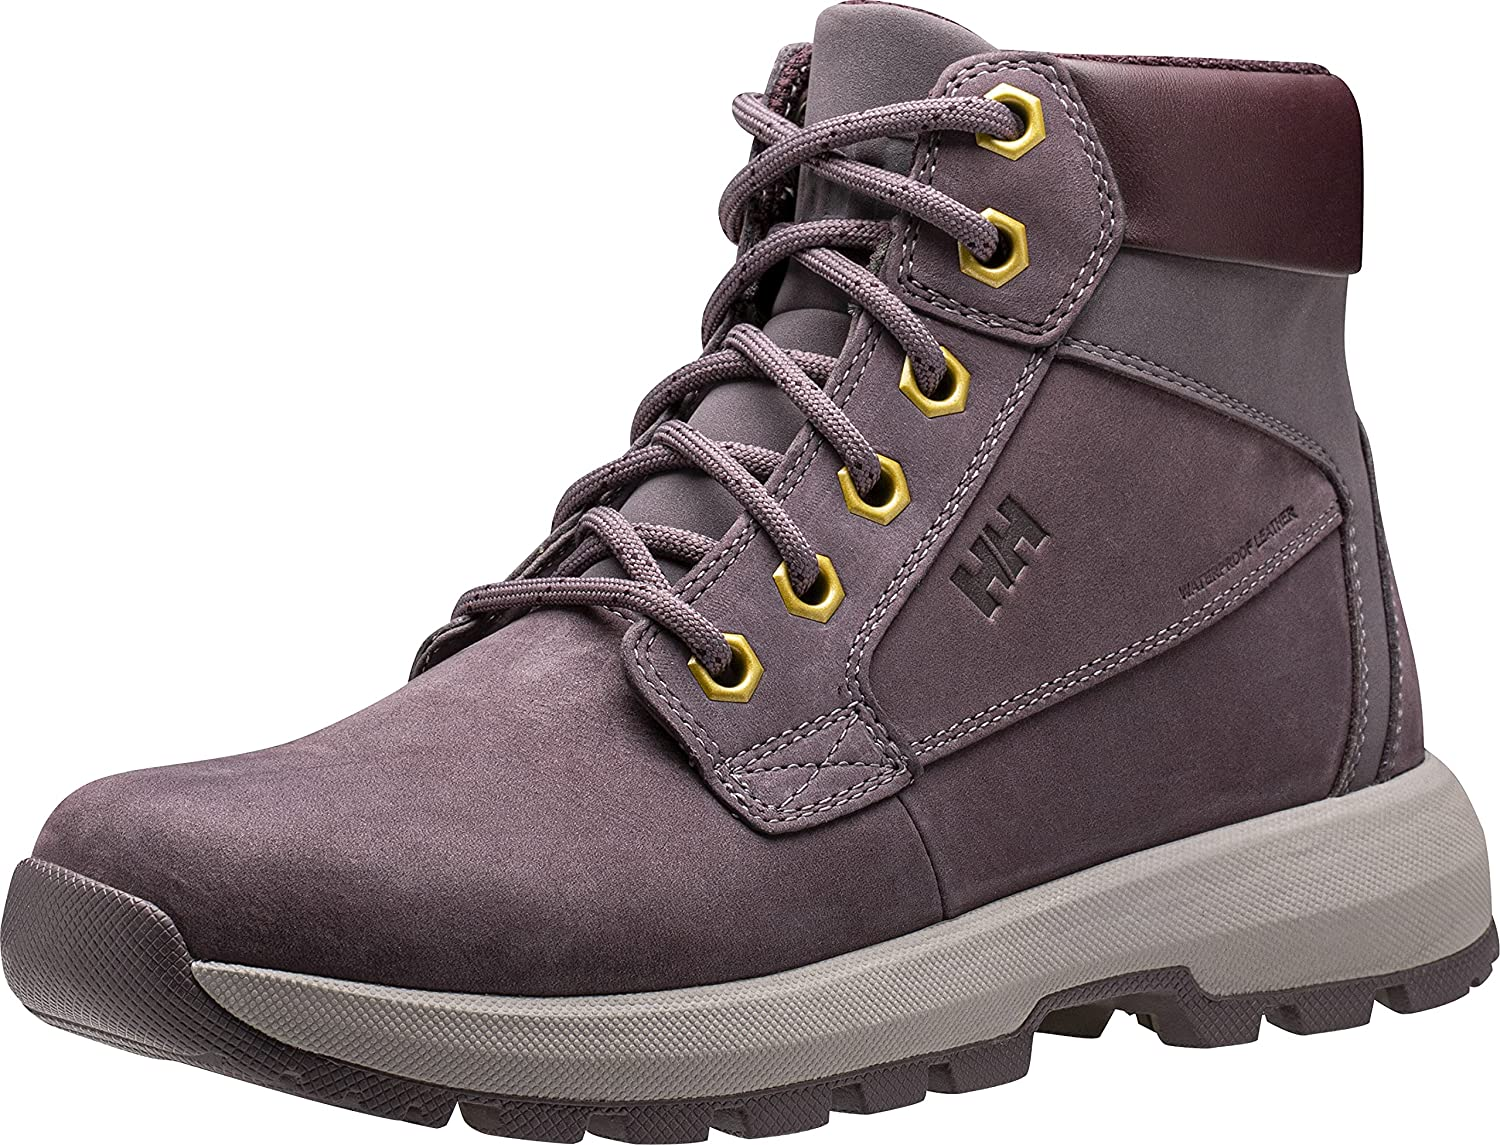 Helly Hansen Womens Bowstring Waterproof Leather Work Boot